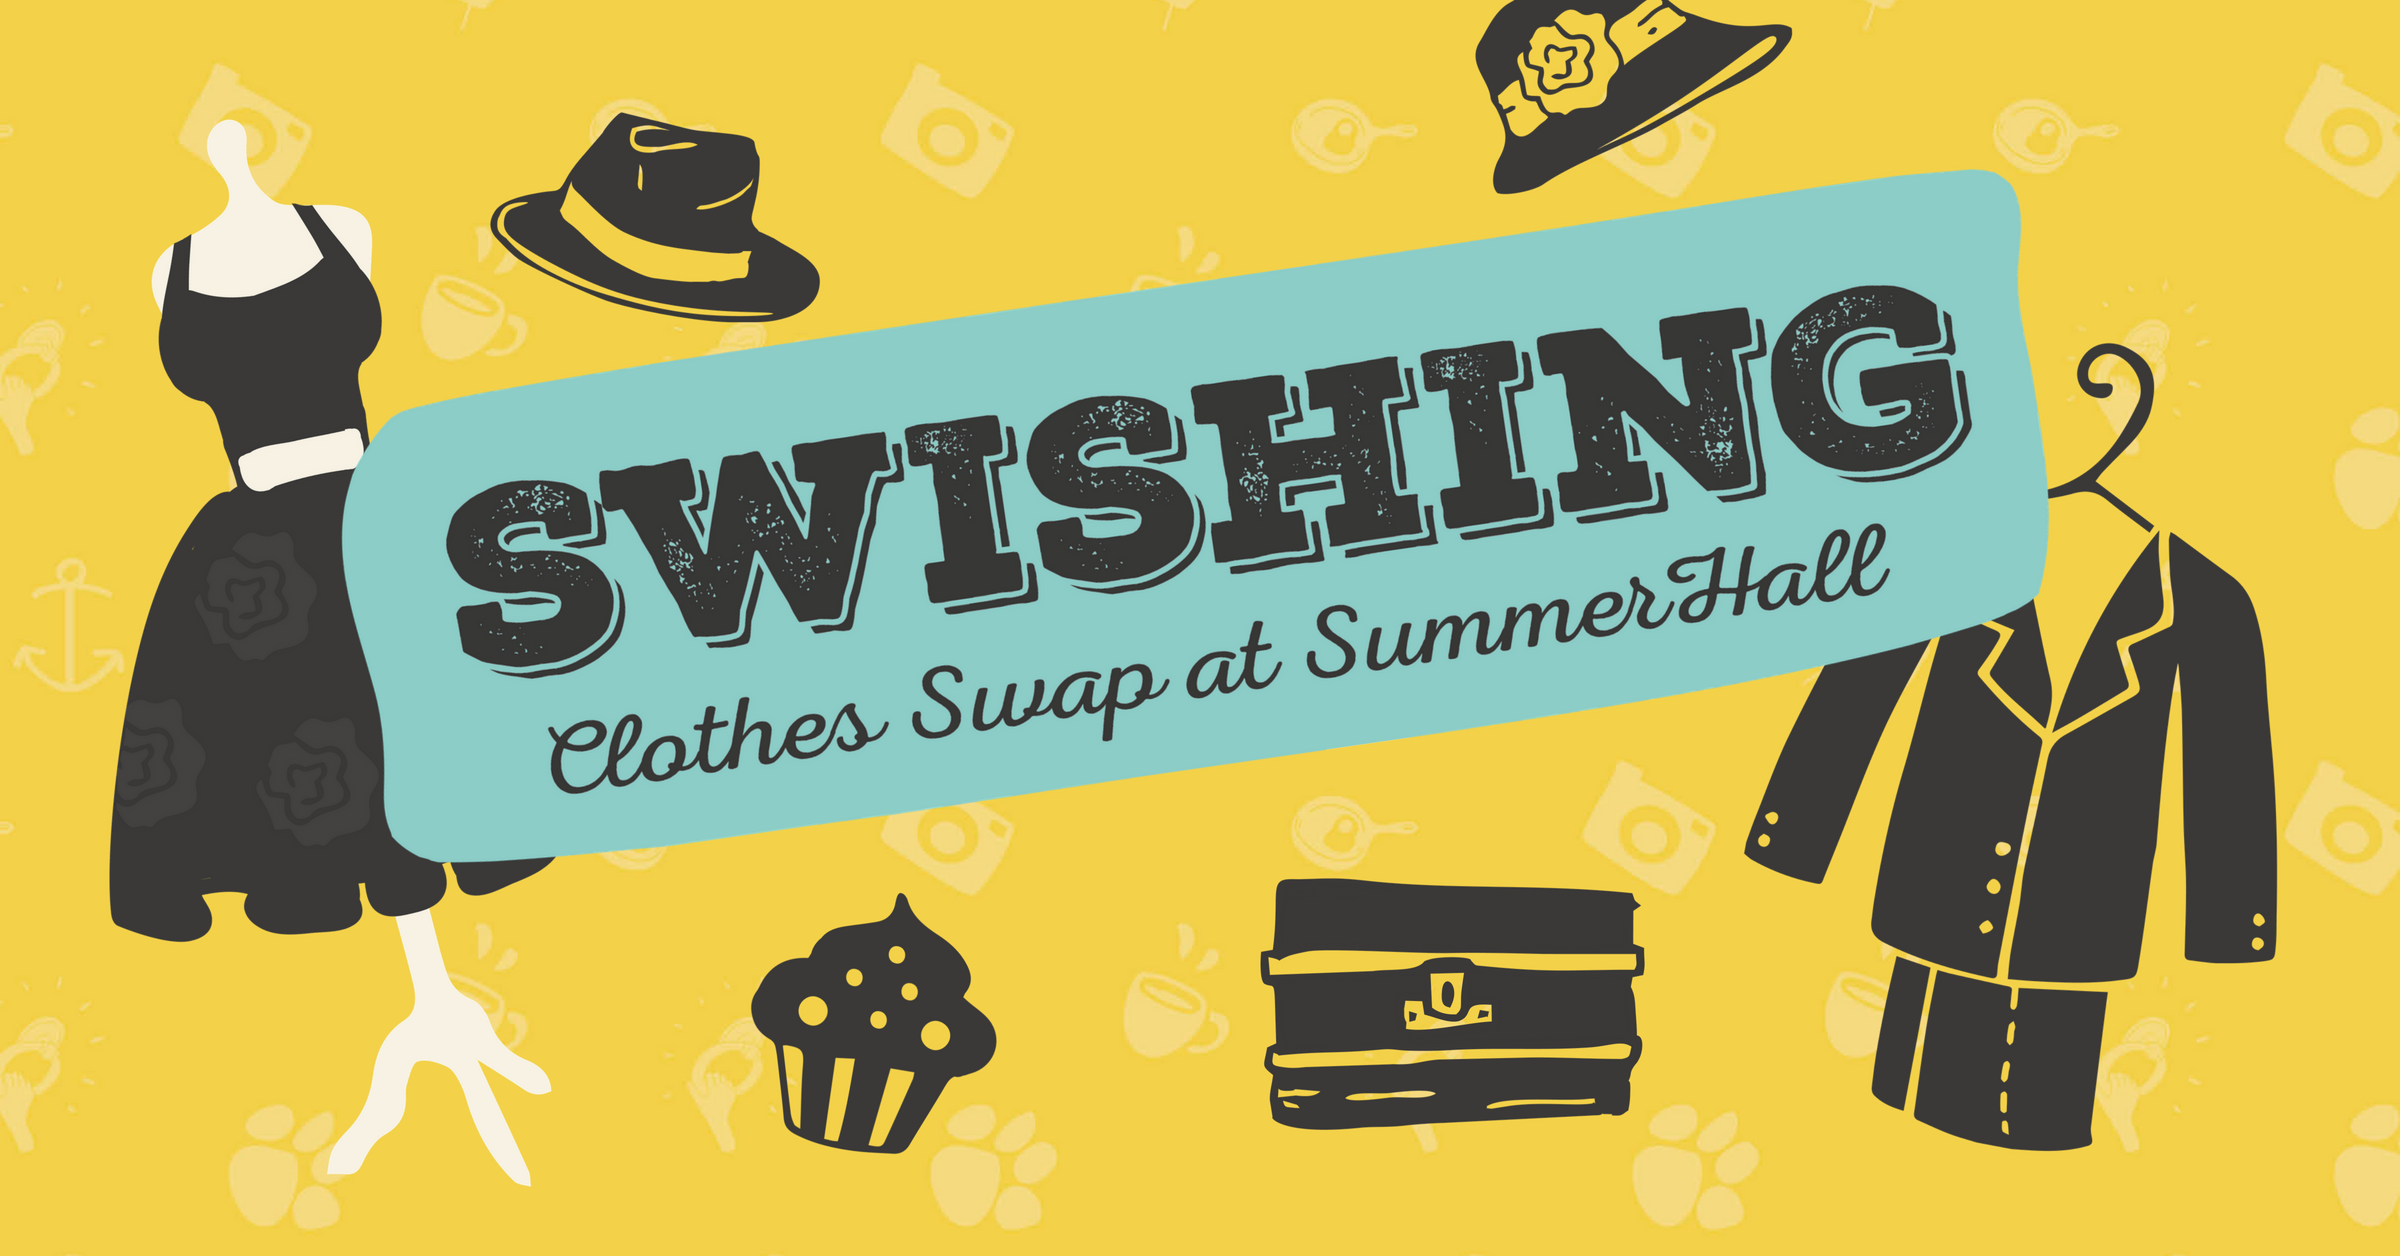 Join Us - Swishing Clothes Swap at Summerhall - Vintage Vibes